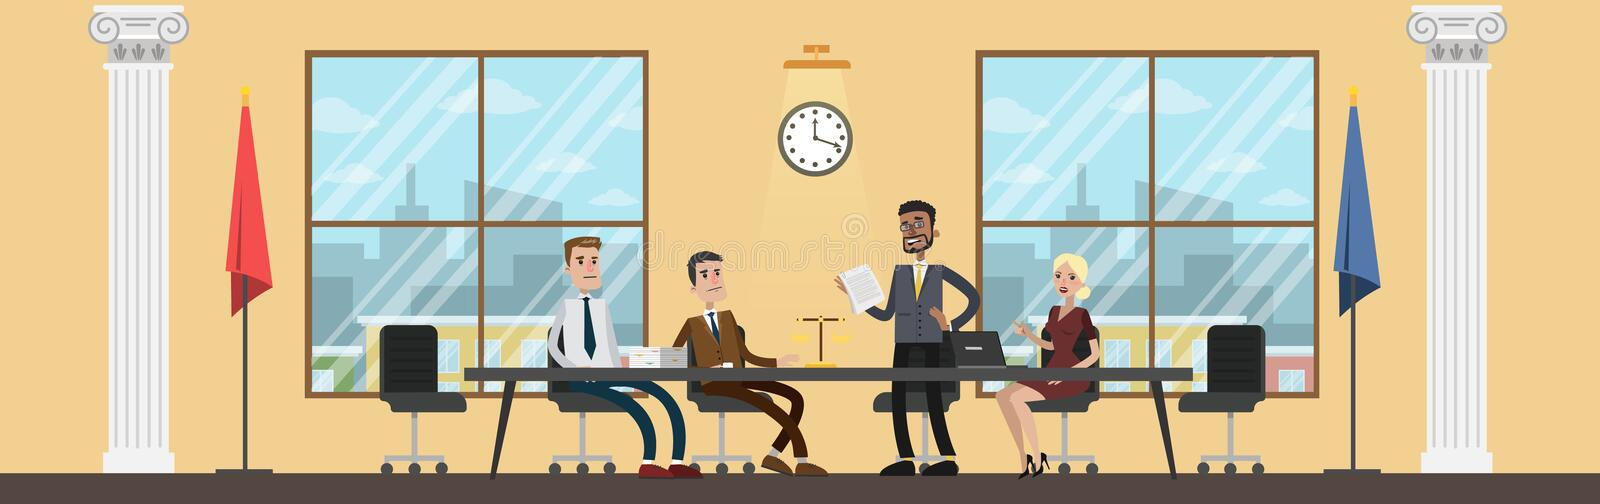 Court building interior with people on meeting. Attorney or lawyer in the conference room discuss trial process. Vector flat illustration vector illustration